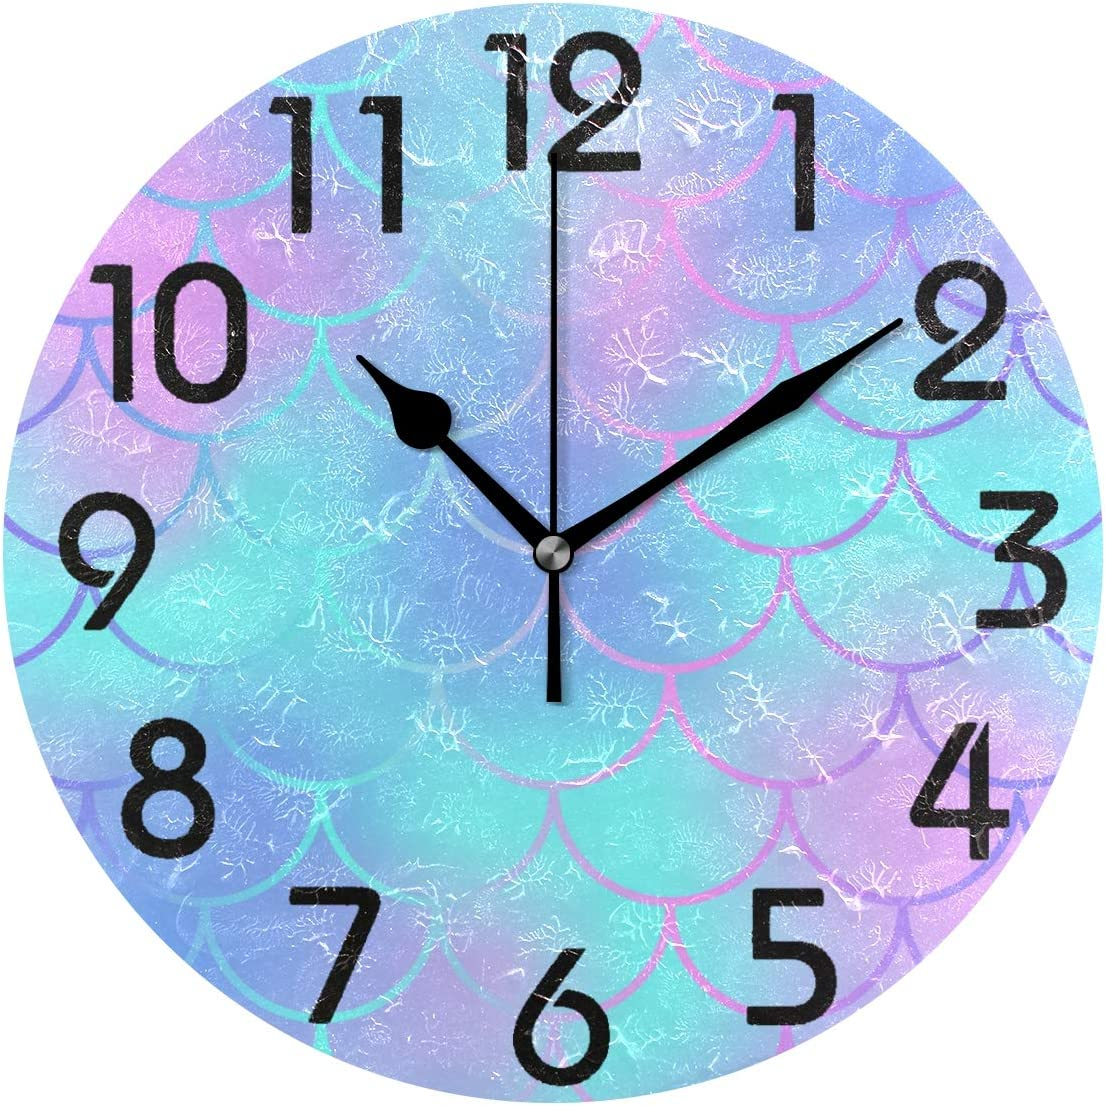 Naanle Beautiful Mermaid Tail Scale Pattern Round Wall Clock Decorative, 9.5 Inch Battery Operated Quartz Analog Quiet Desk Clock for Home,Office,School